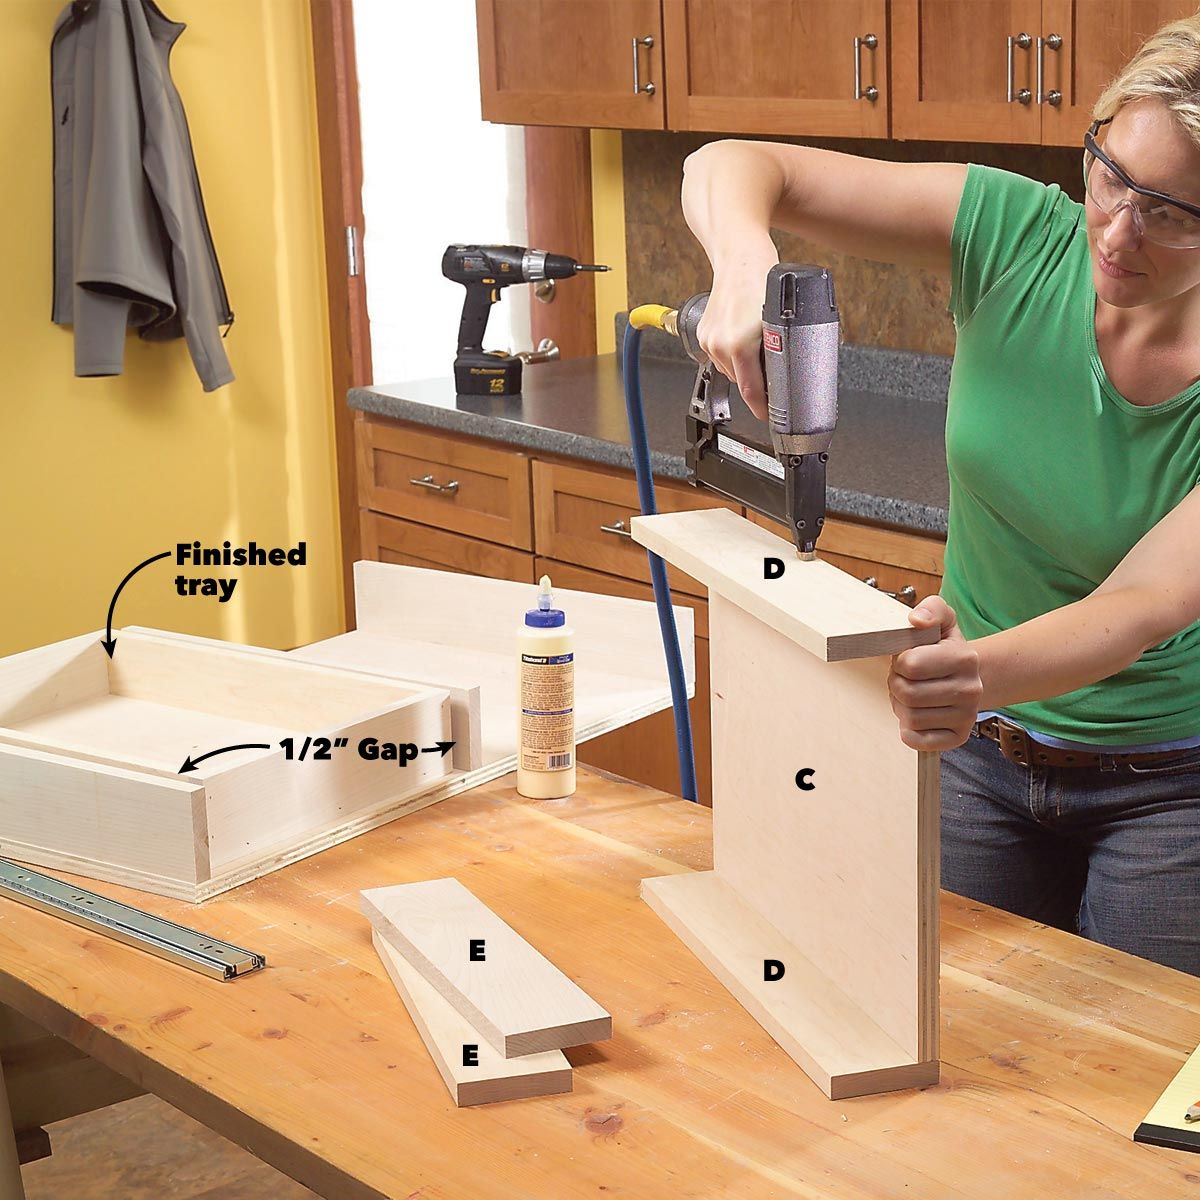 How To Build Kitchen Sink Storage Trays Kitchen Sink Storage Sink Storage Kitchen Cabinet Storage Solutions